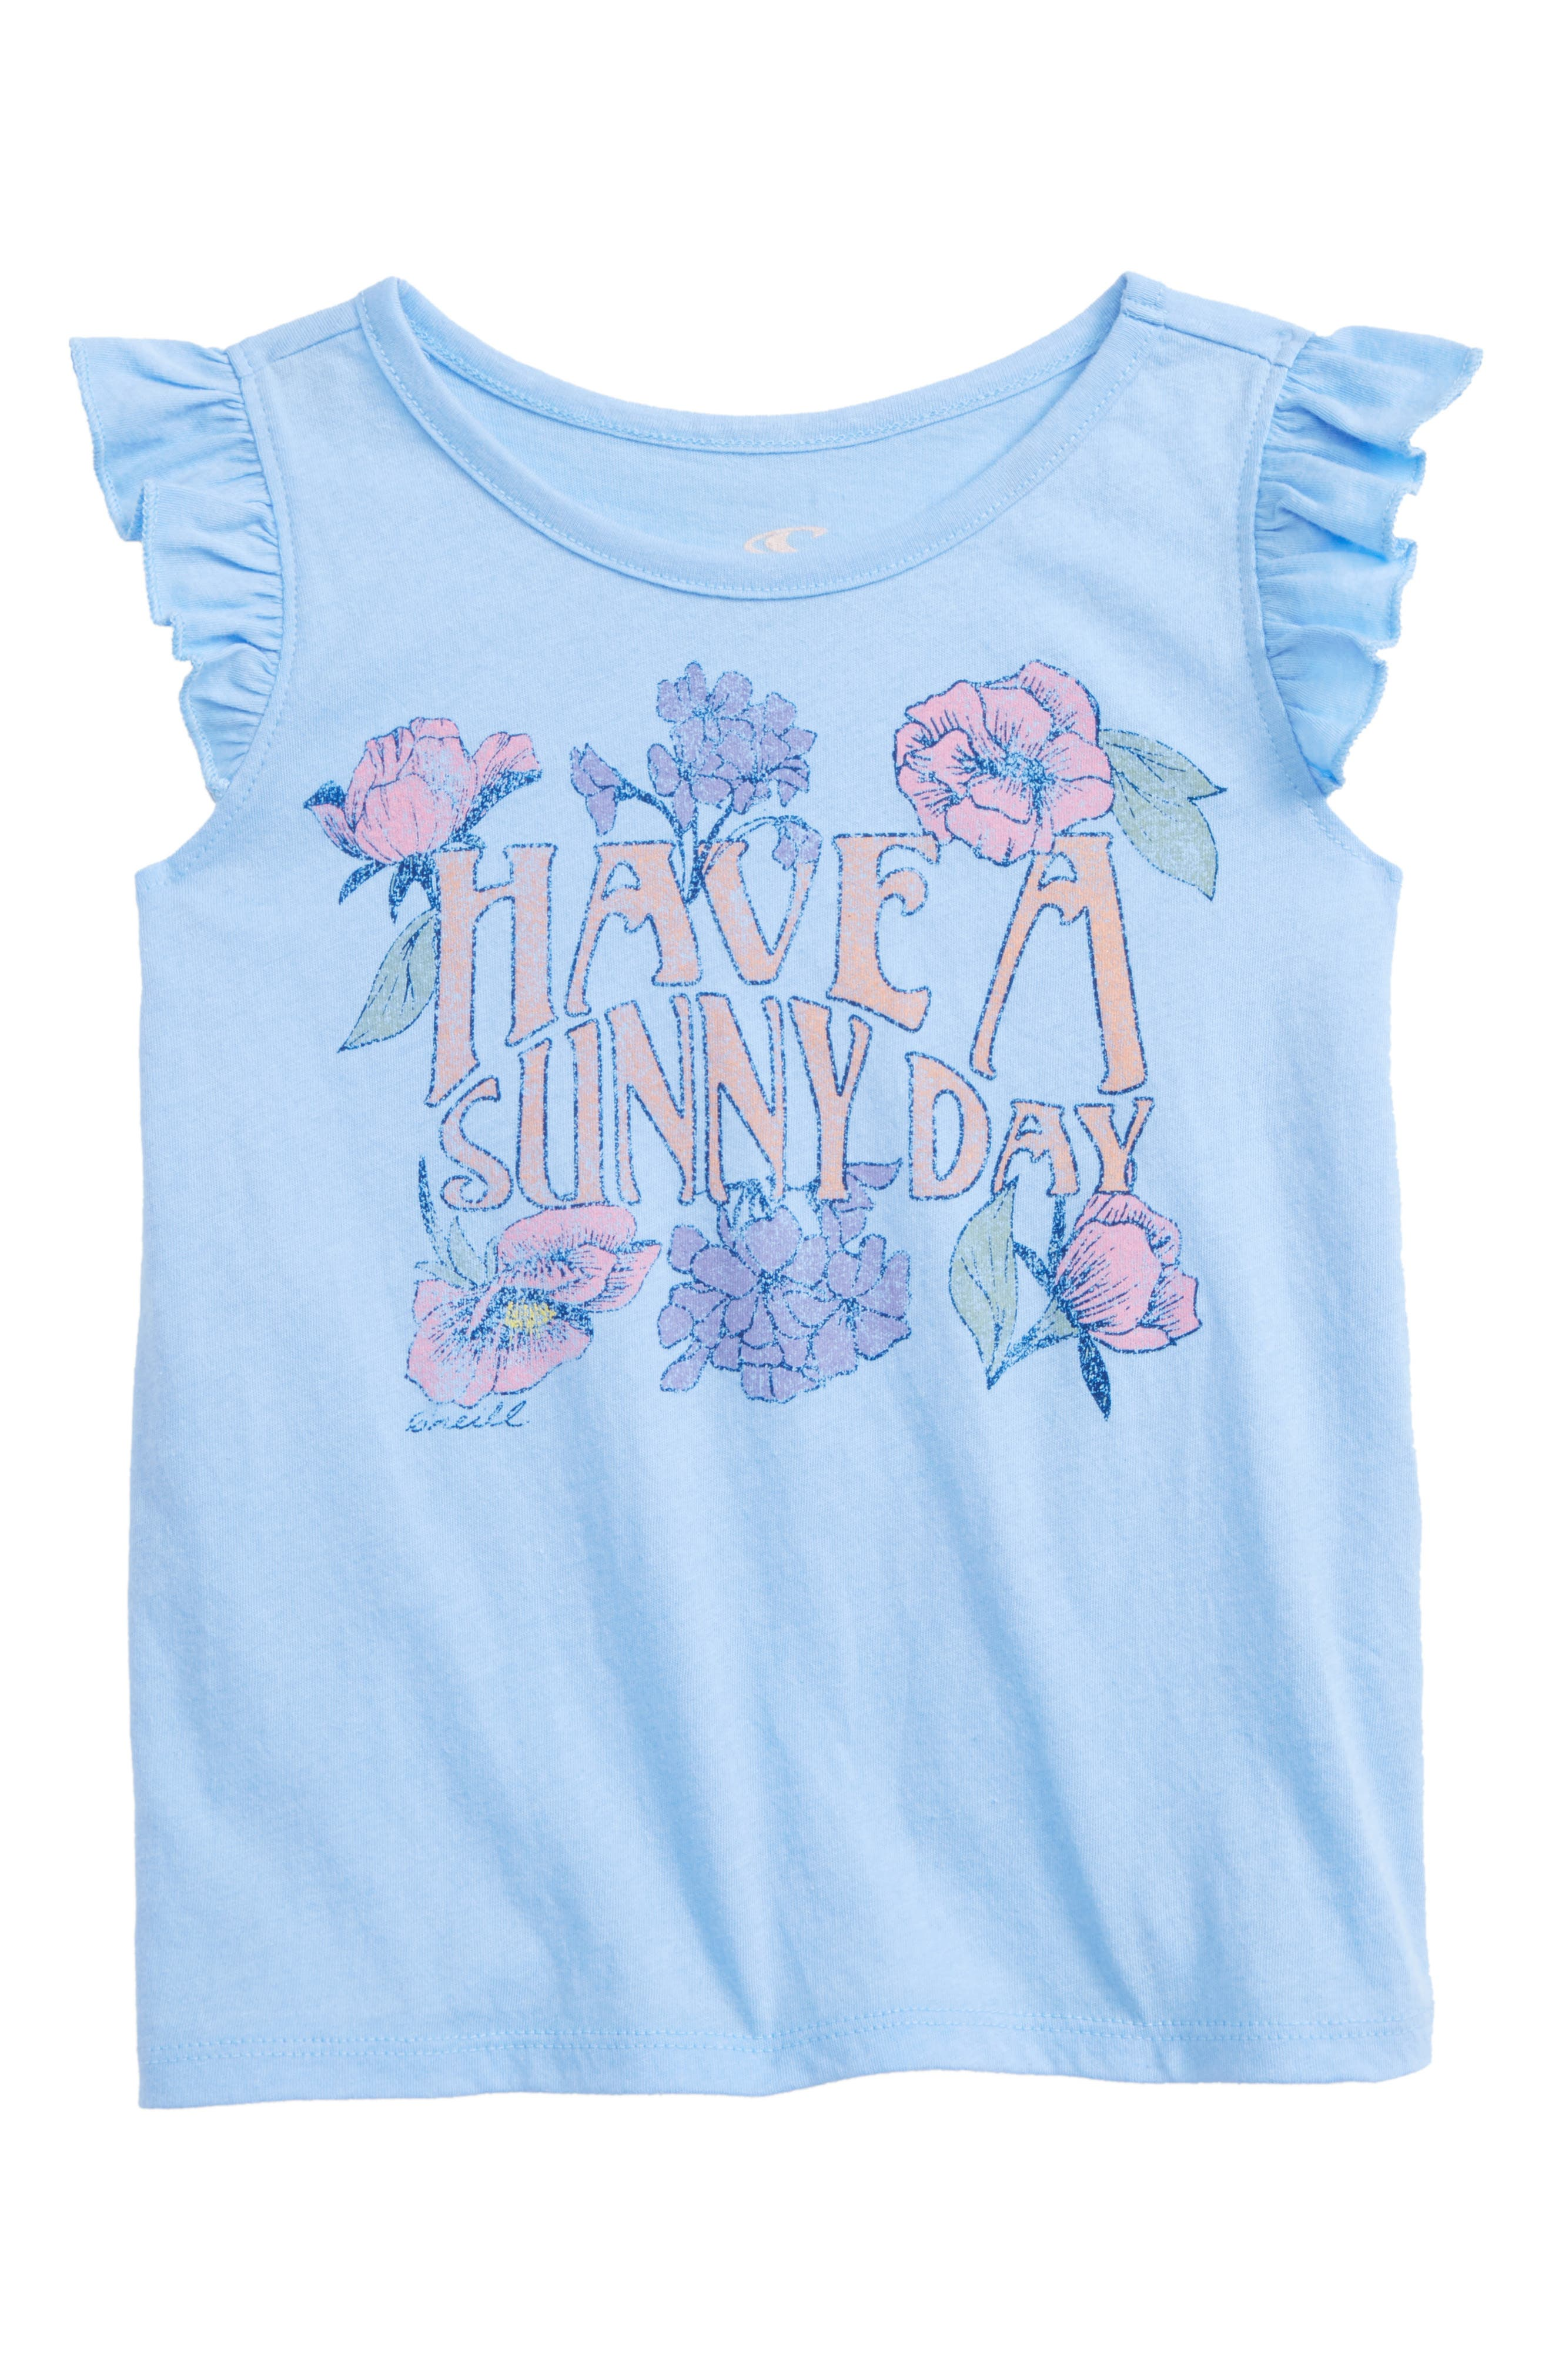 Sunday Ruffle Graphic Tank,                             Main thumbnail 1, color,                             Bleached Denim- Ctb